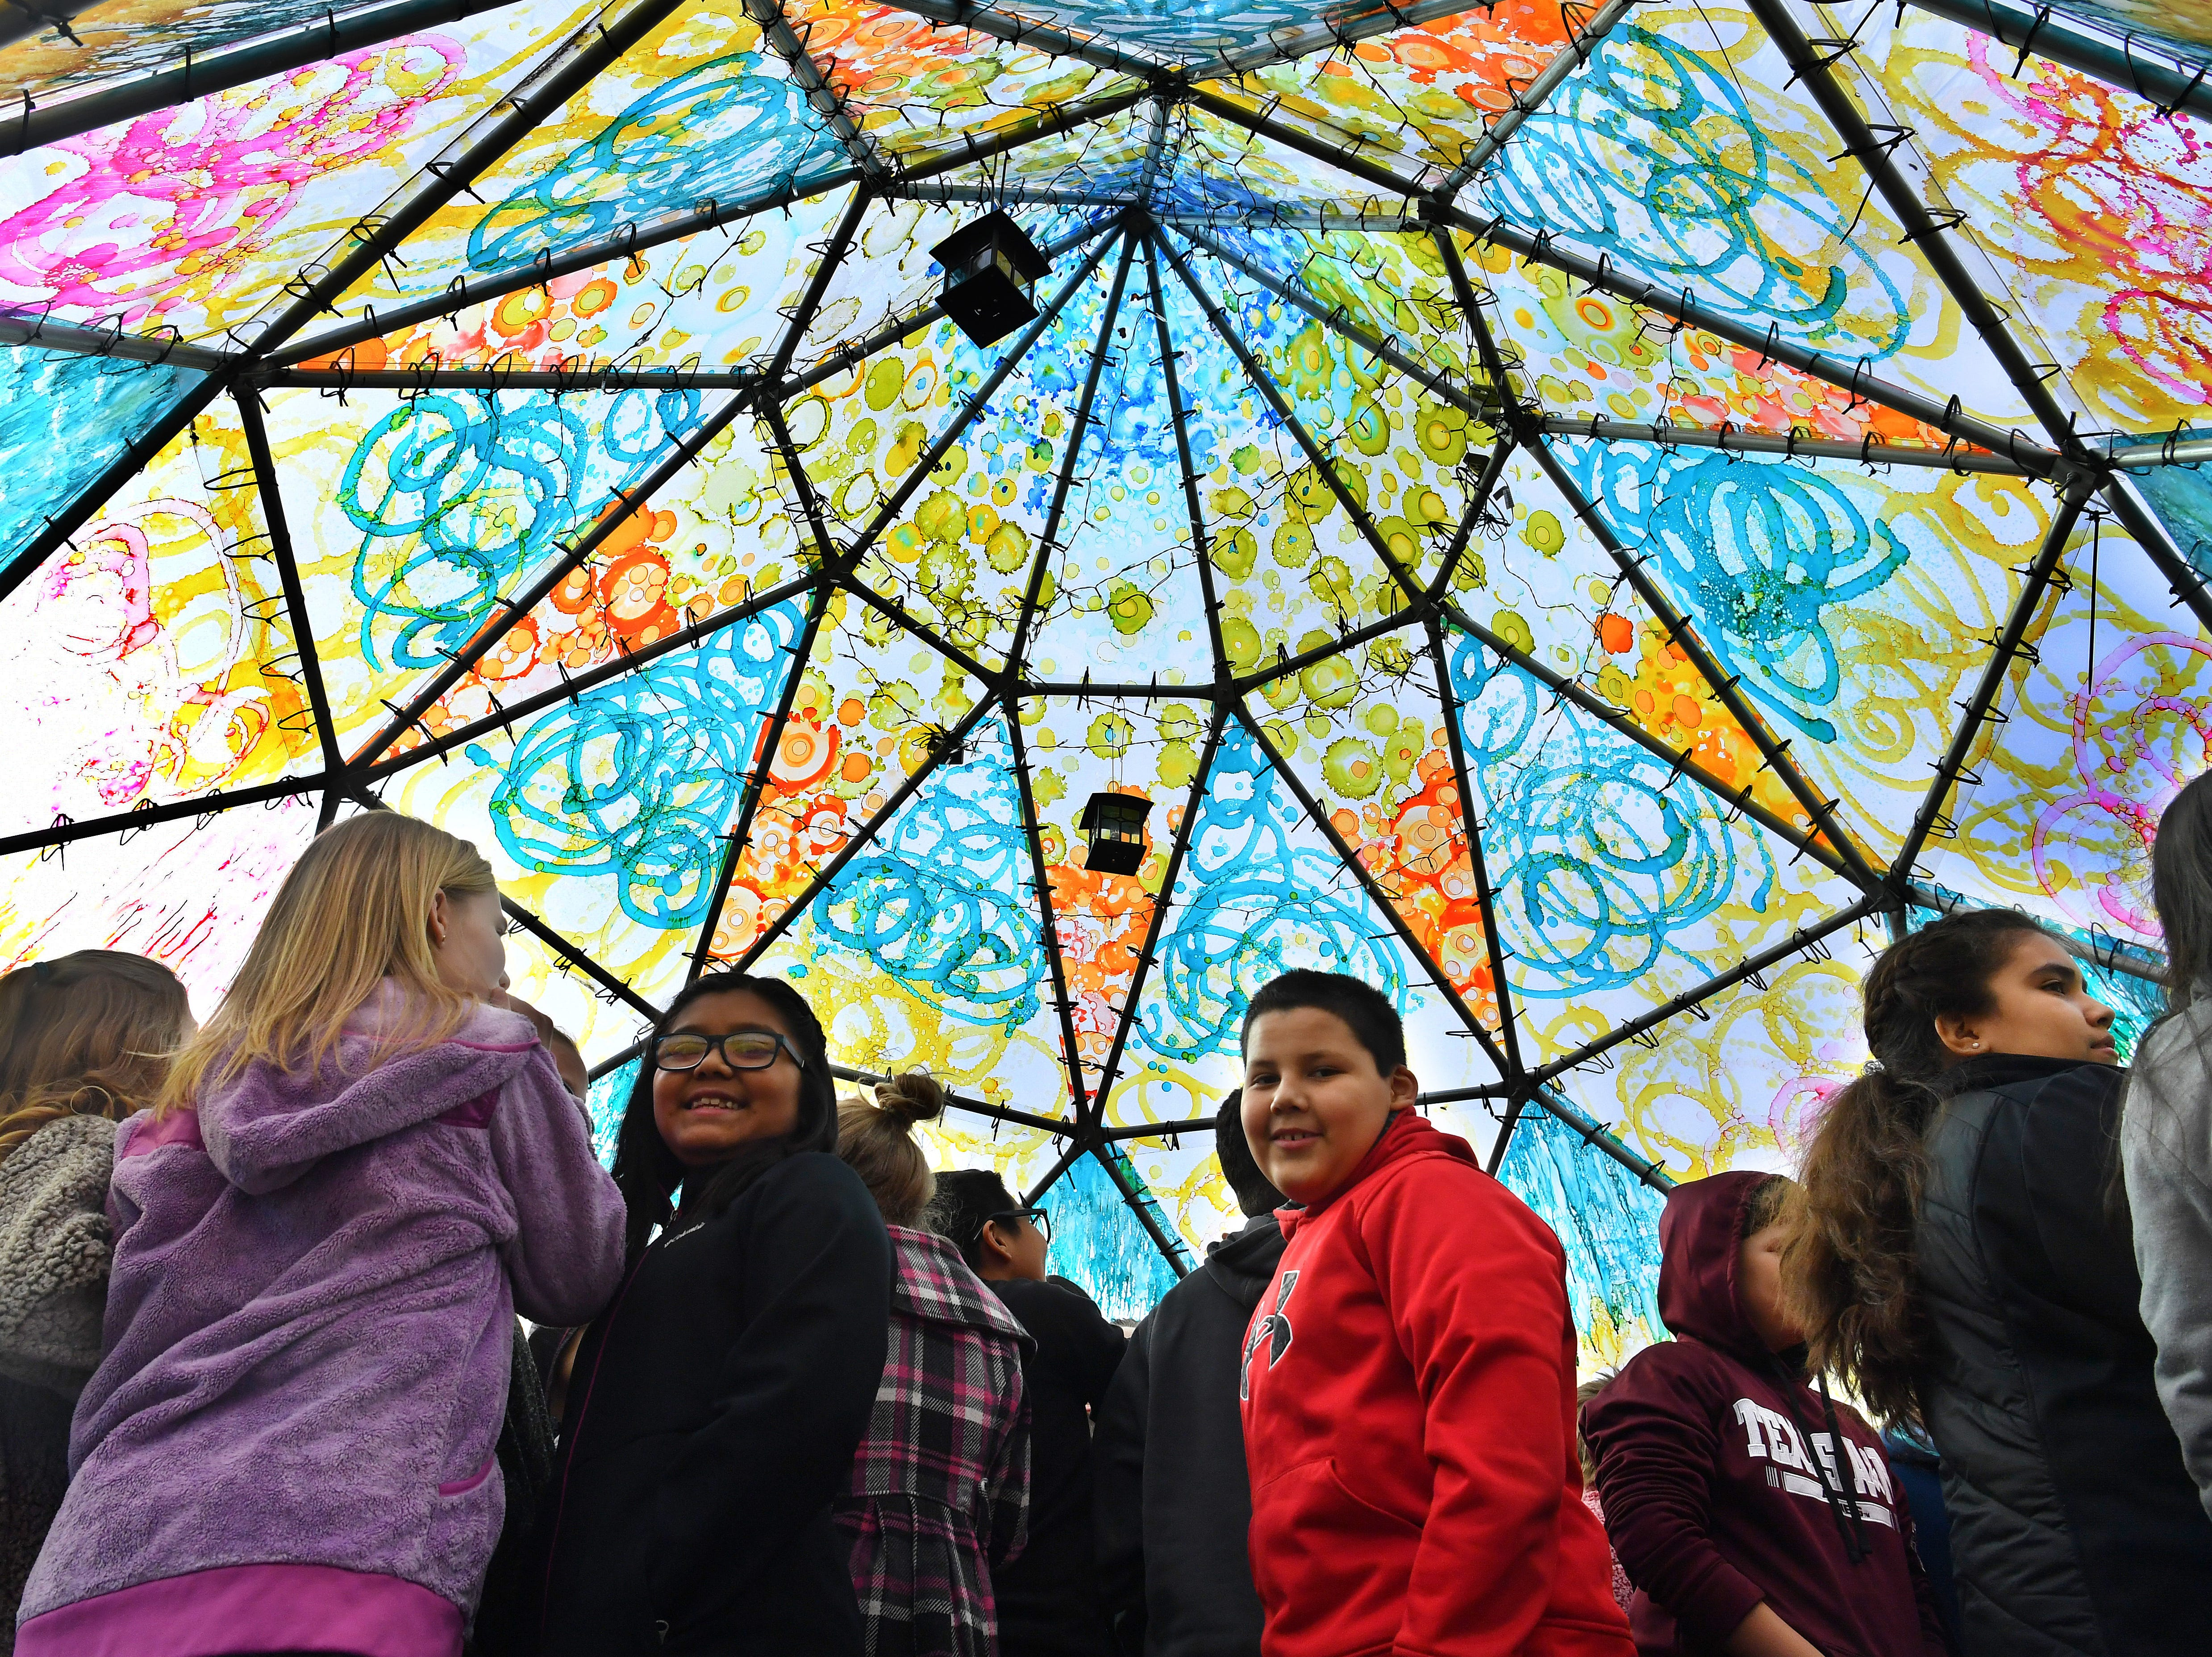 Fifth graders from Olney Elementary learned about art and Native American culture during a visit to the Wichita Dome at Nexus Square Friday.